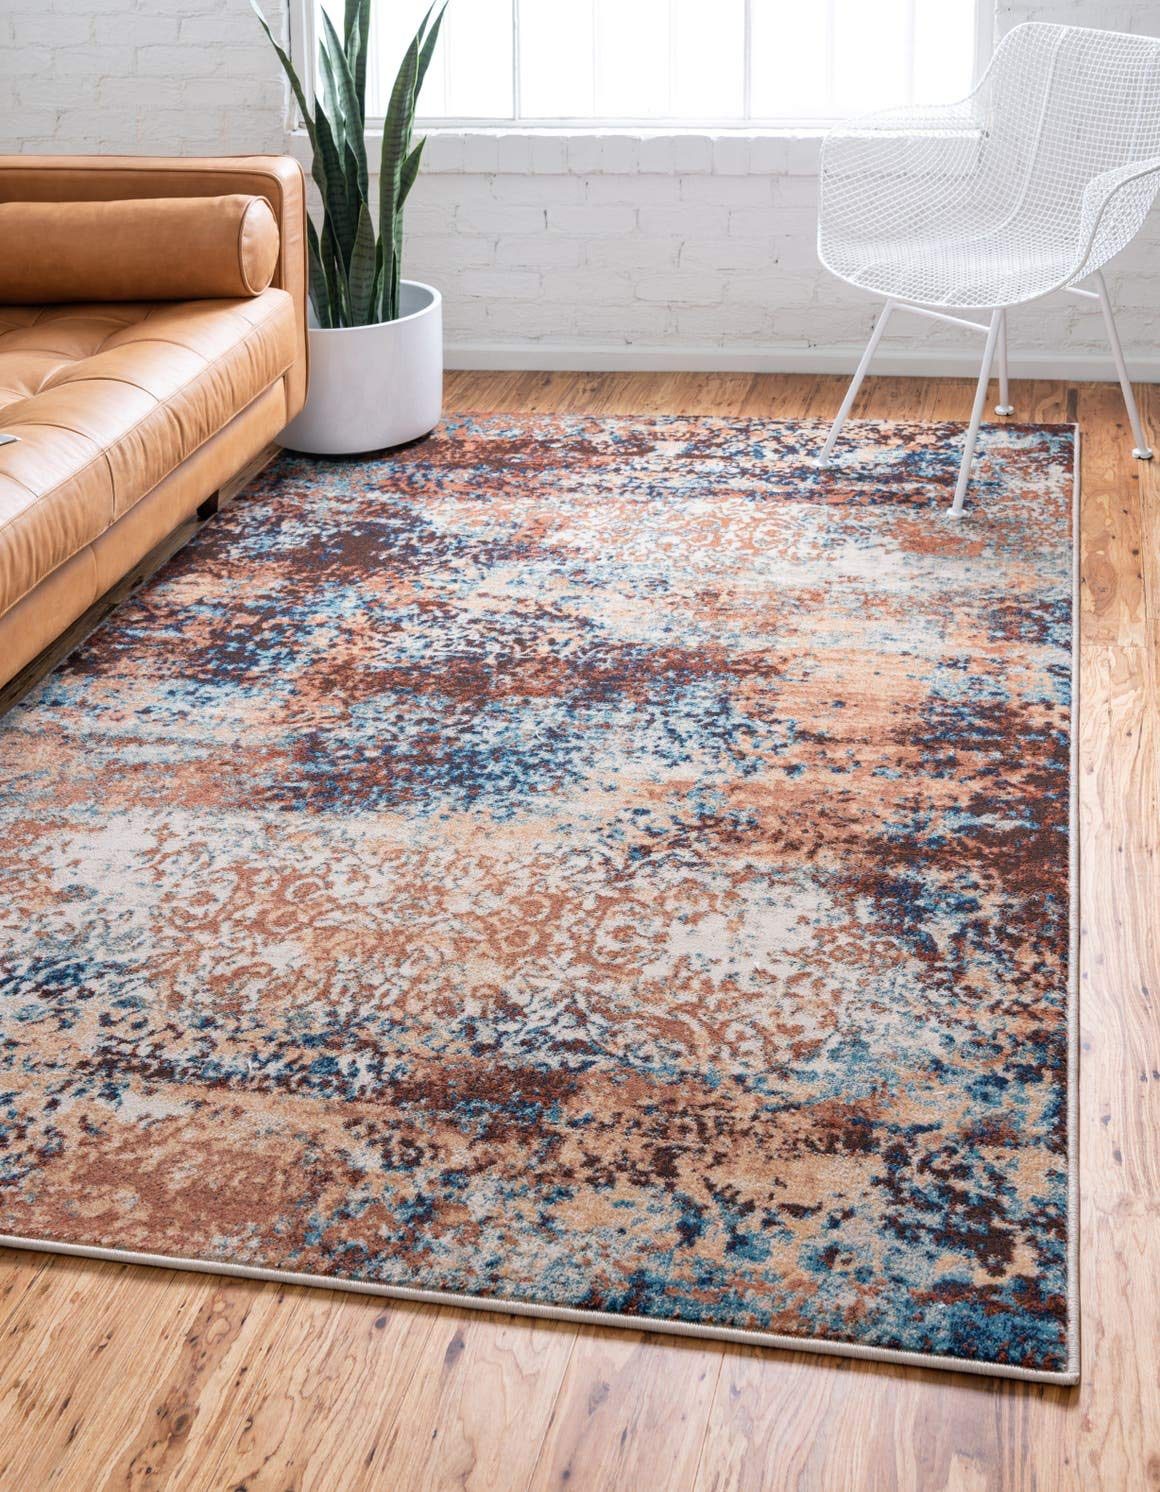 Unique Loom Mystic Collection Abstract Rustic Vintage Brick Red Area Rug 4 0 x 6 0